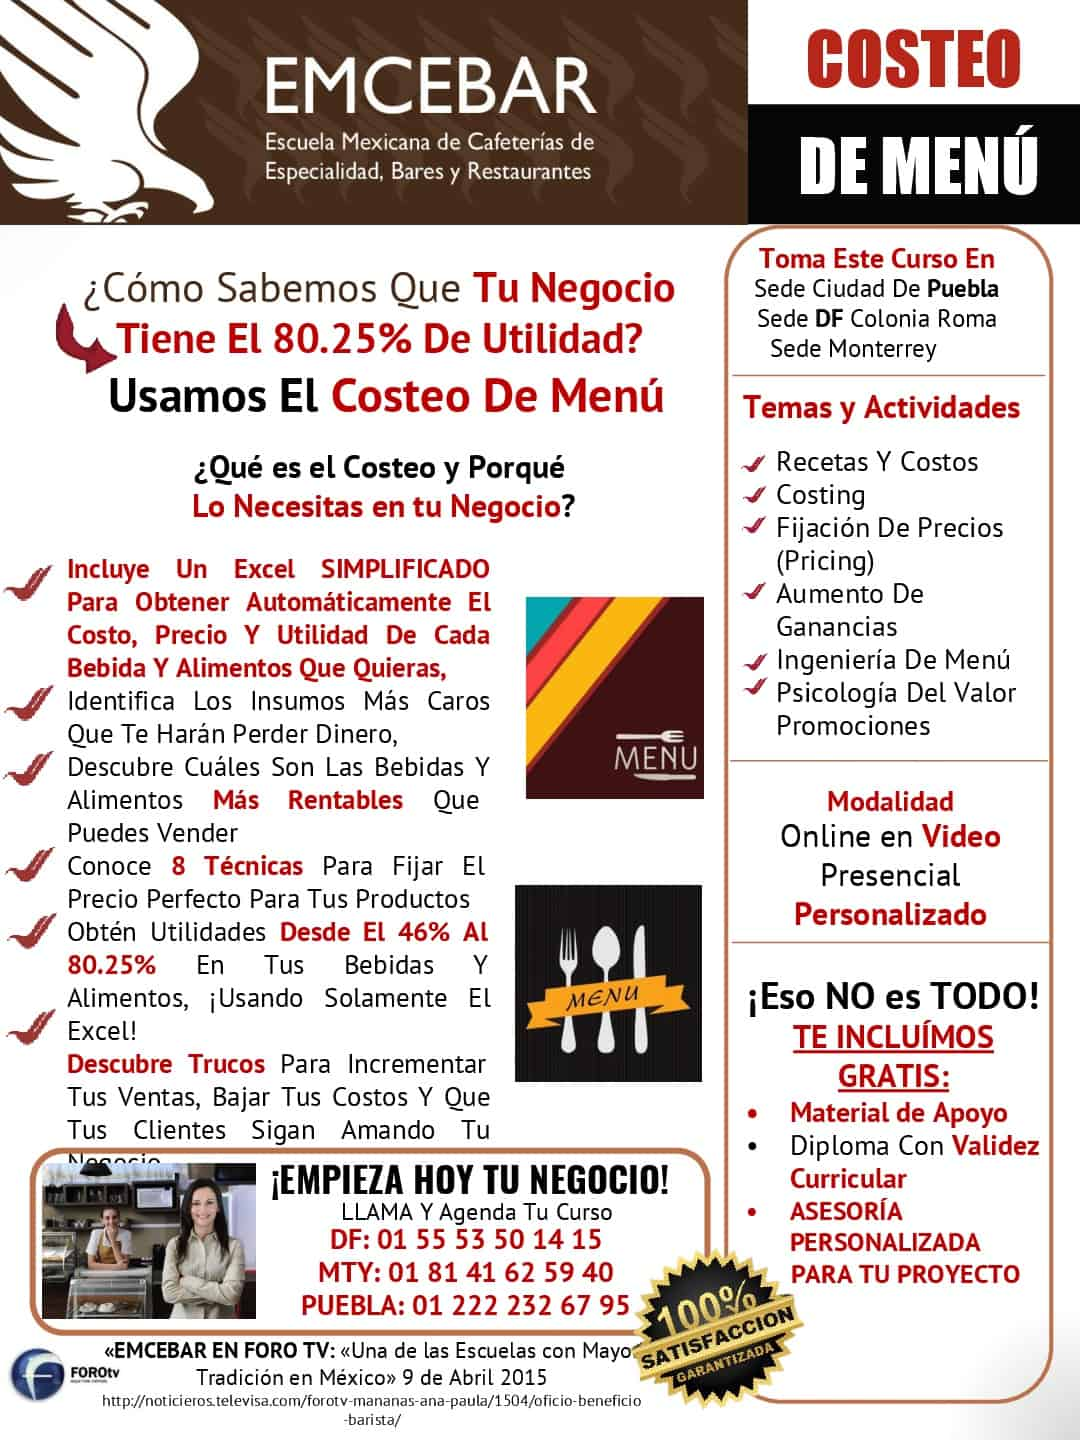 costeo-de-menu